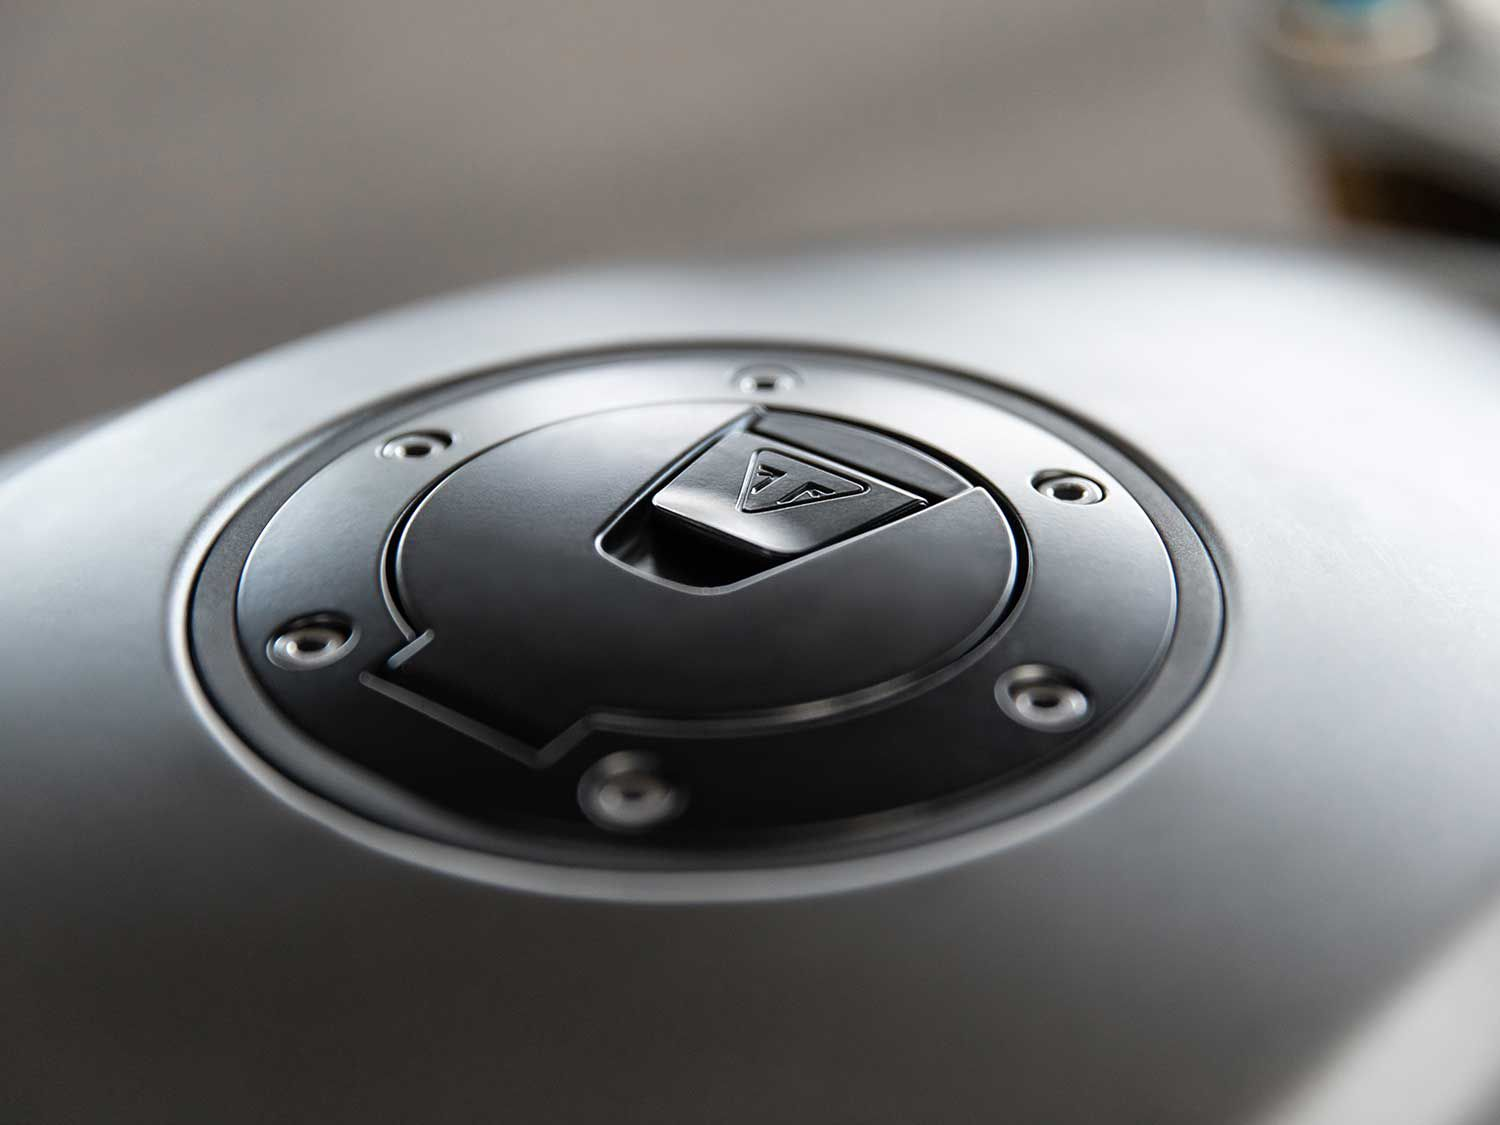 Keyless features extend to the fuel filler cap.